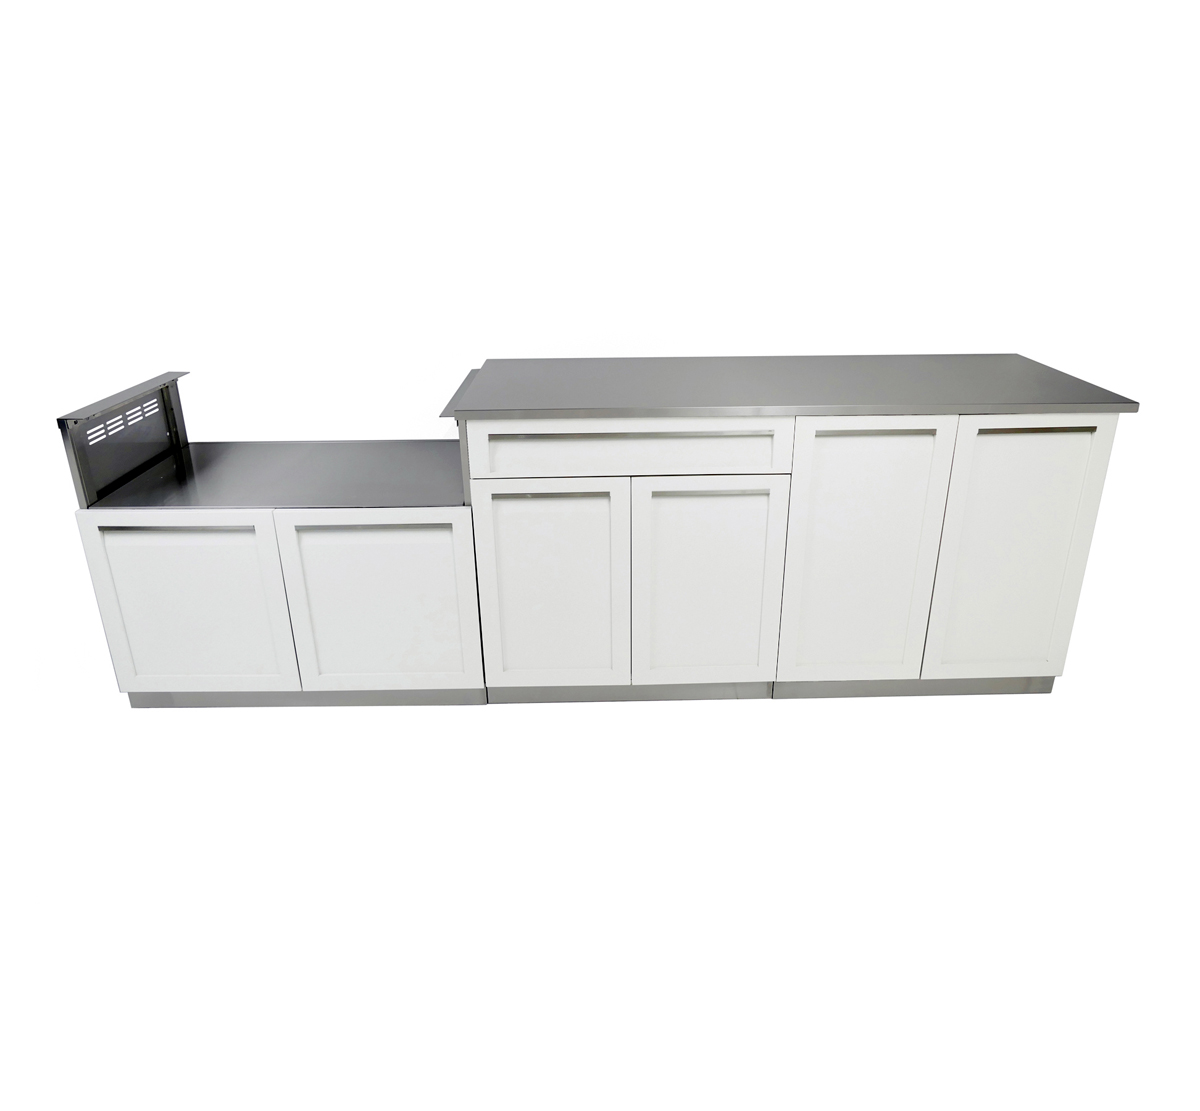 4 piece outdoor kitchen cabinet set w40078 4 life for Kitchen cupboard set